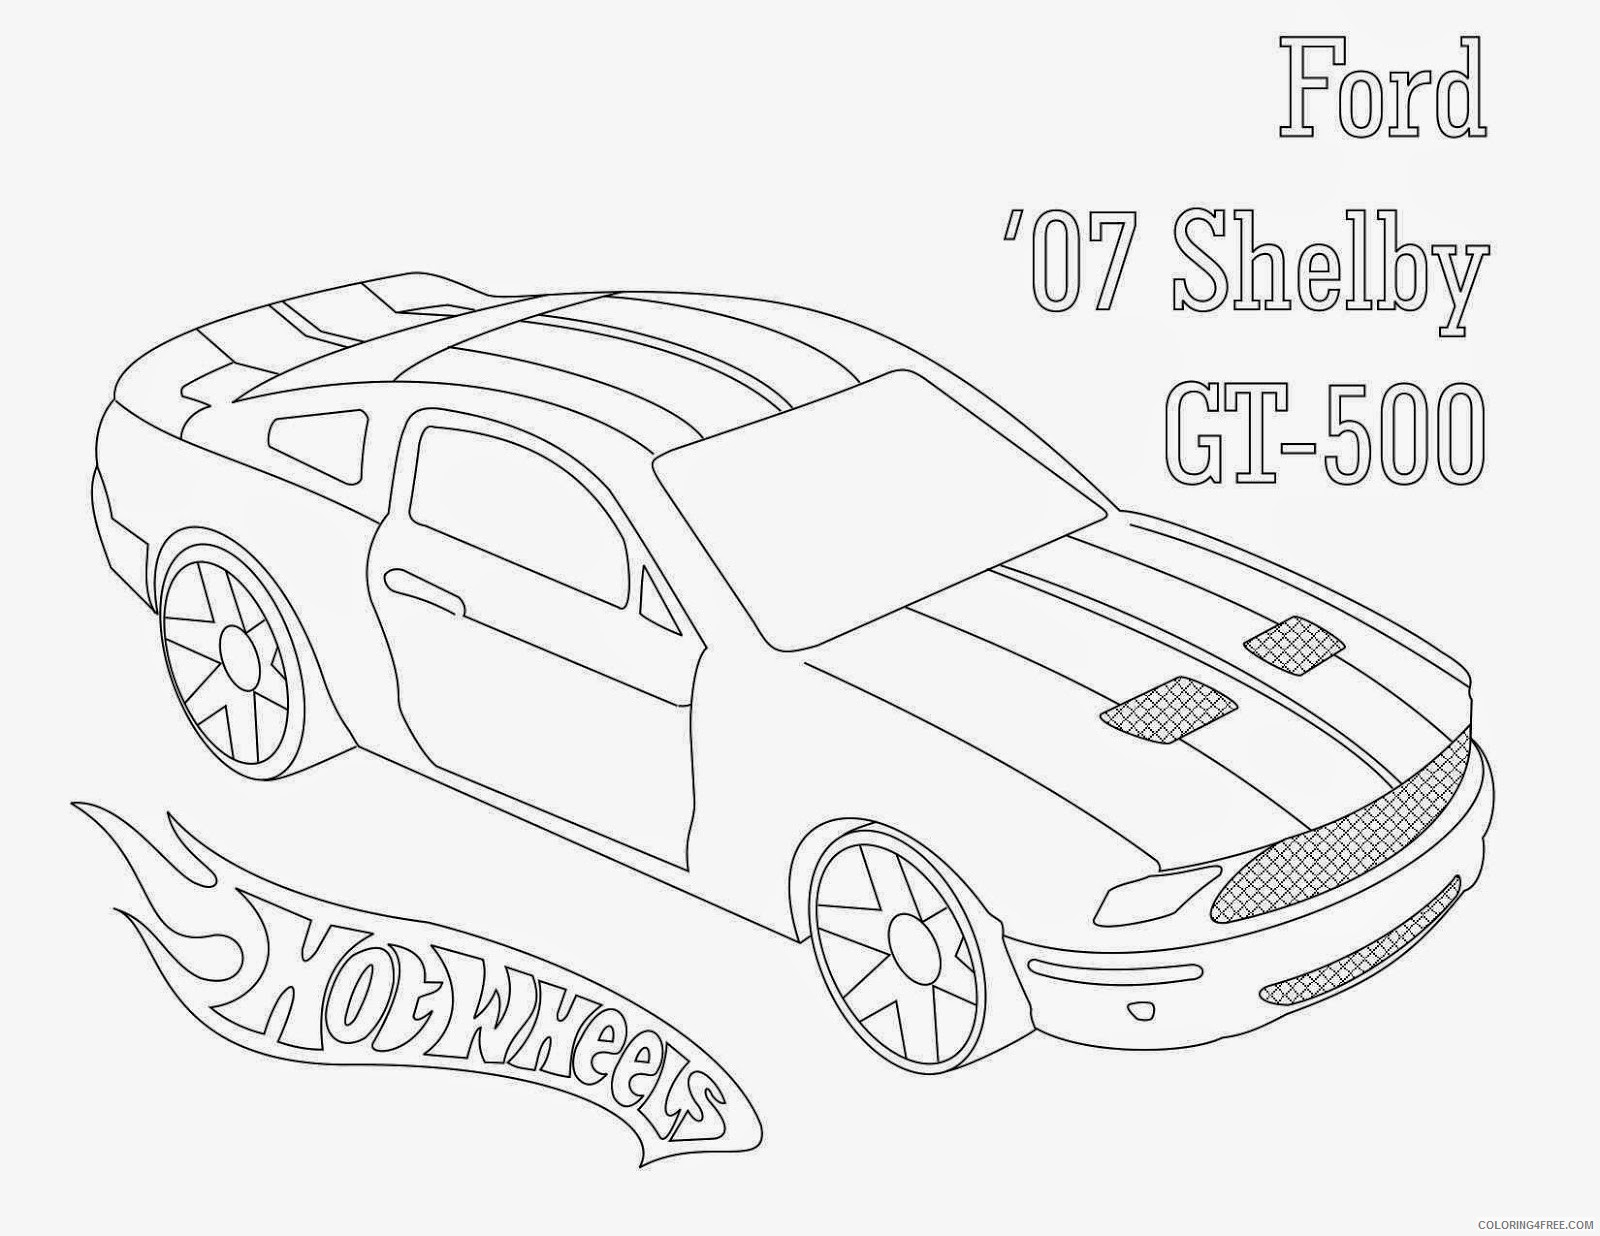 Hot Wheels Cars Colouring Pages Printable Coloring | Race car ... | 1236x1600